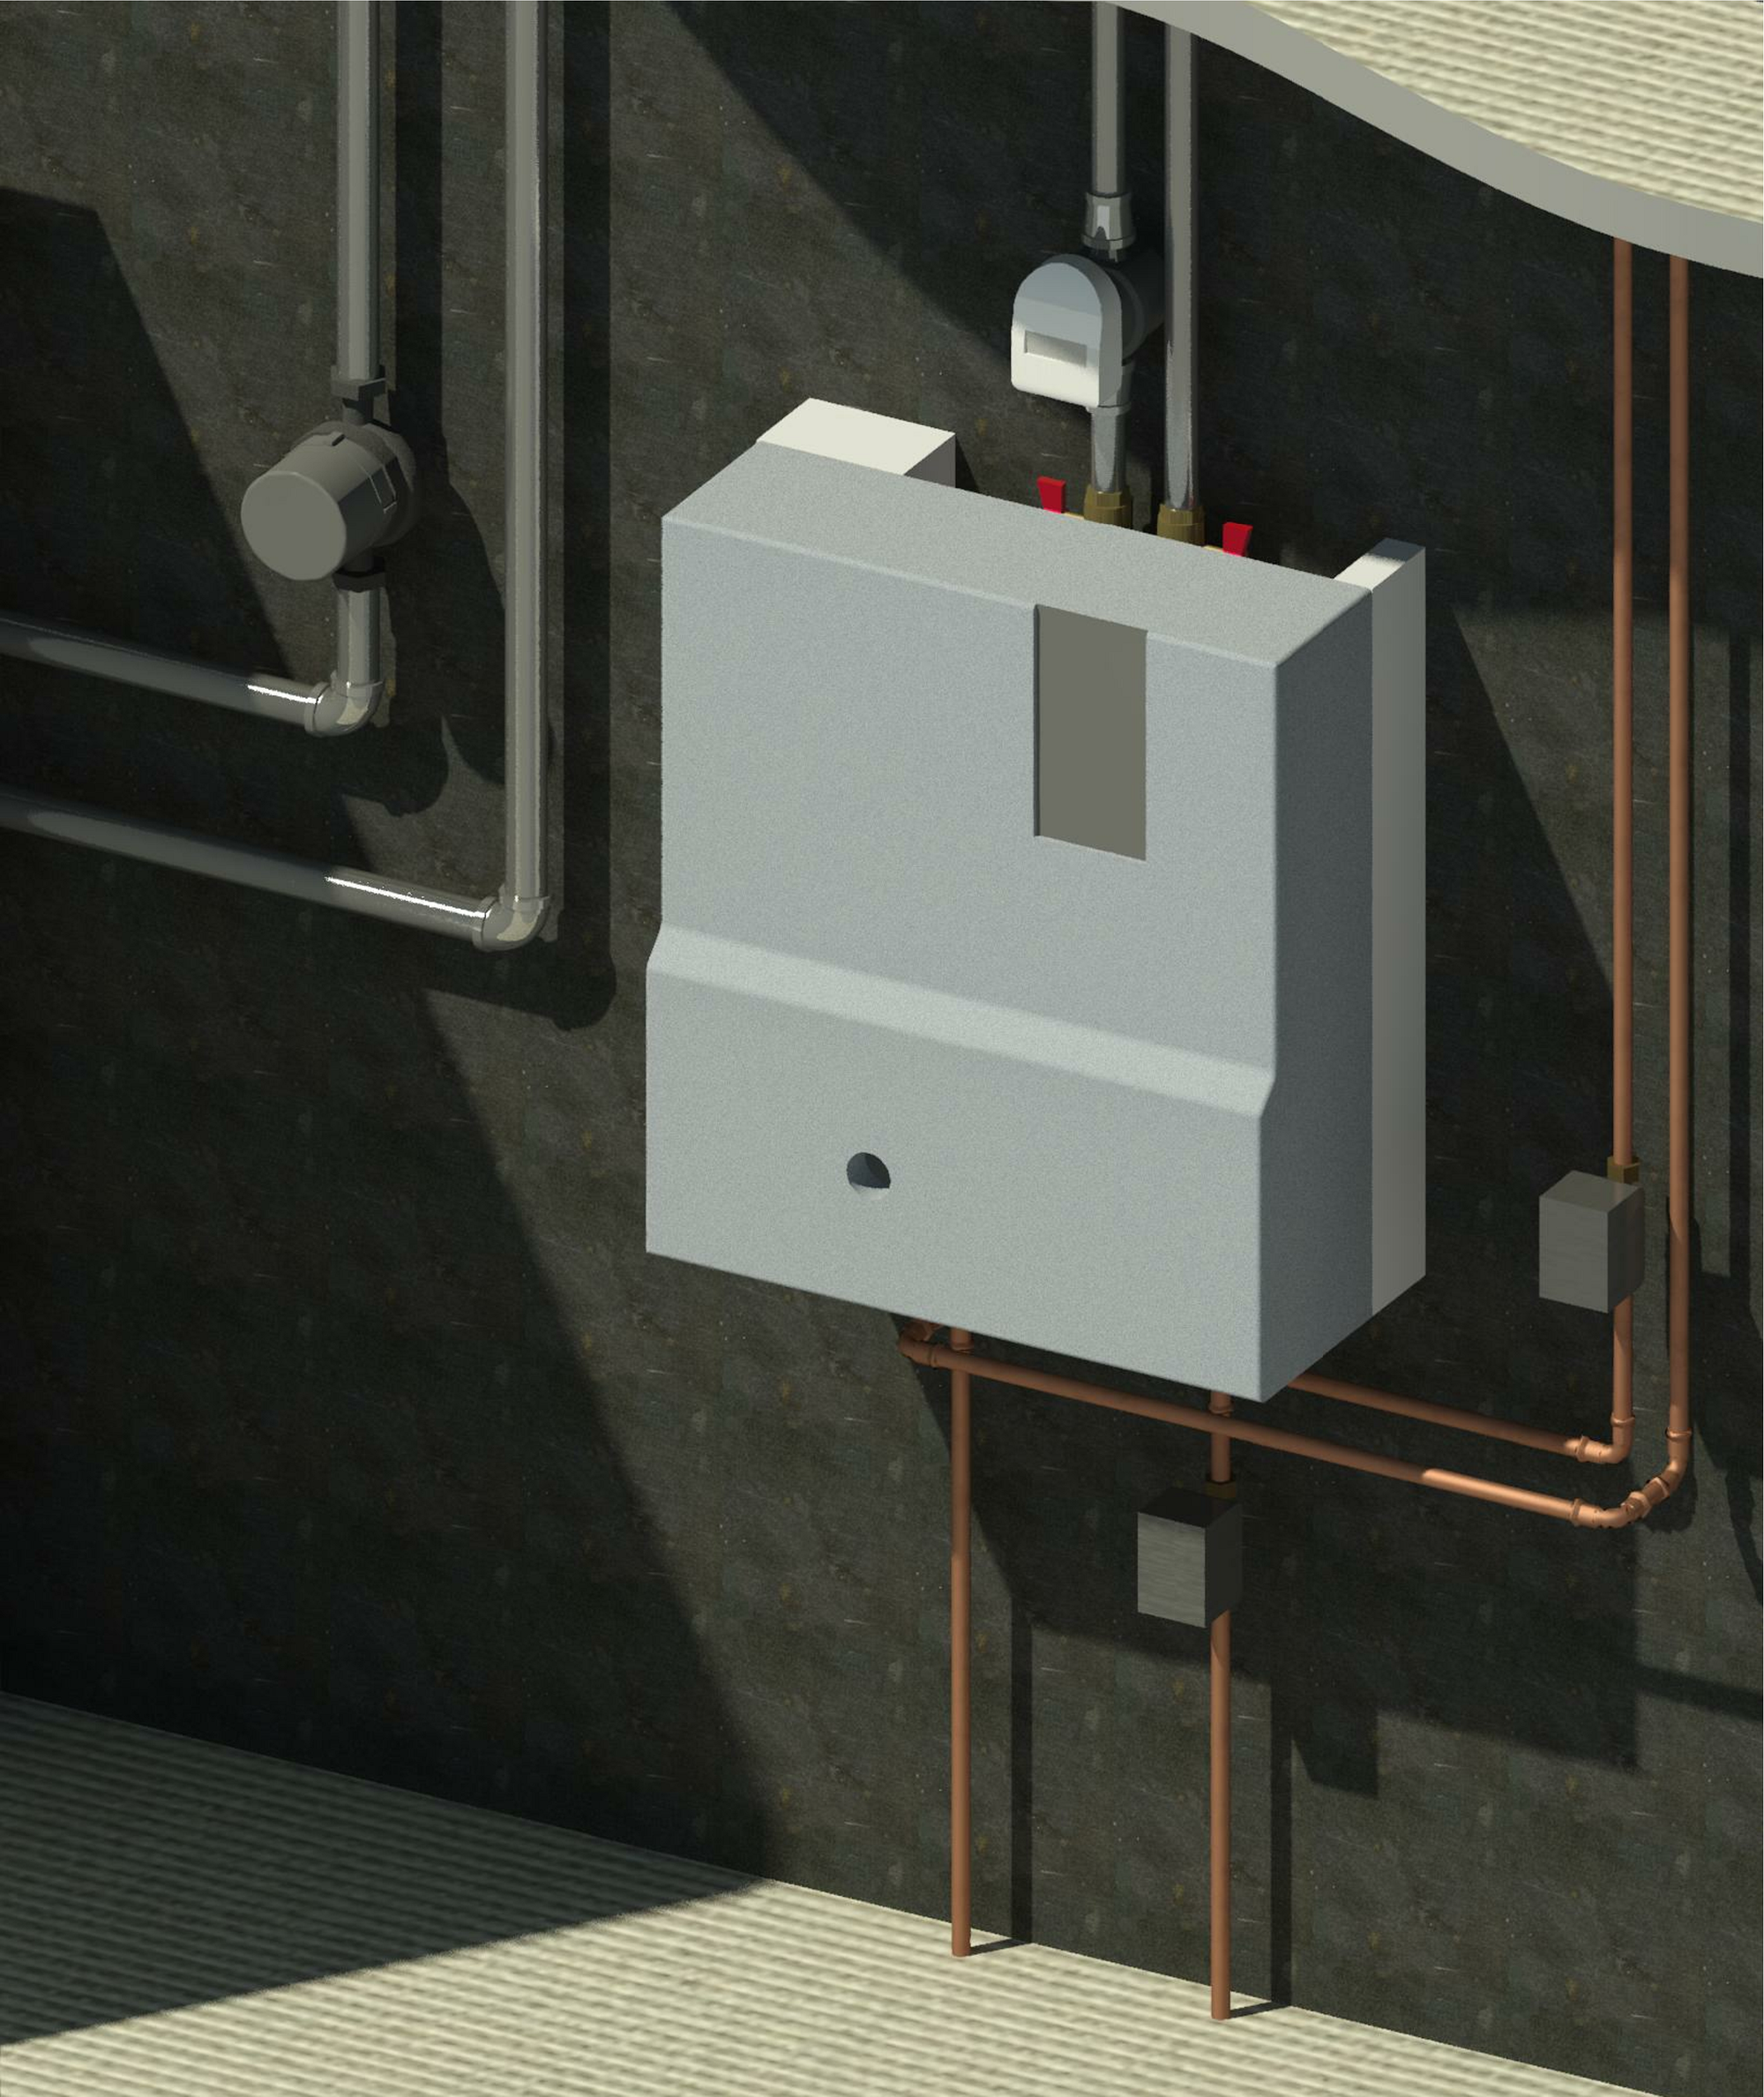 Rendering showing HIU with heat meter and zone valves.